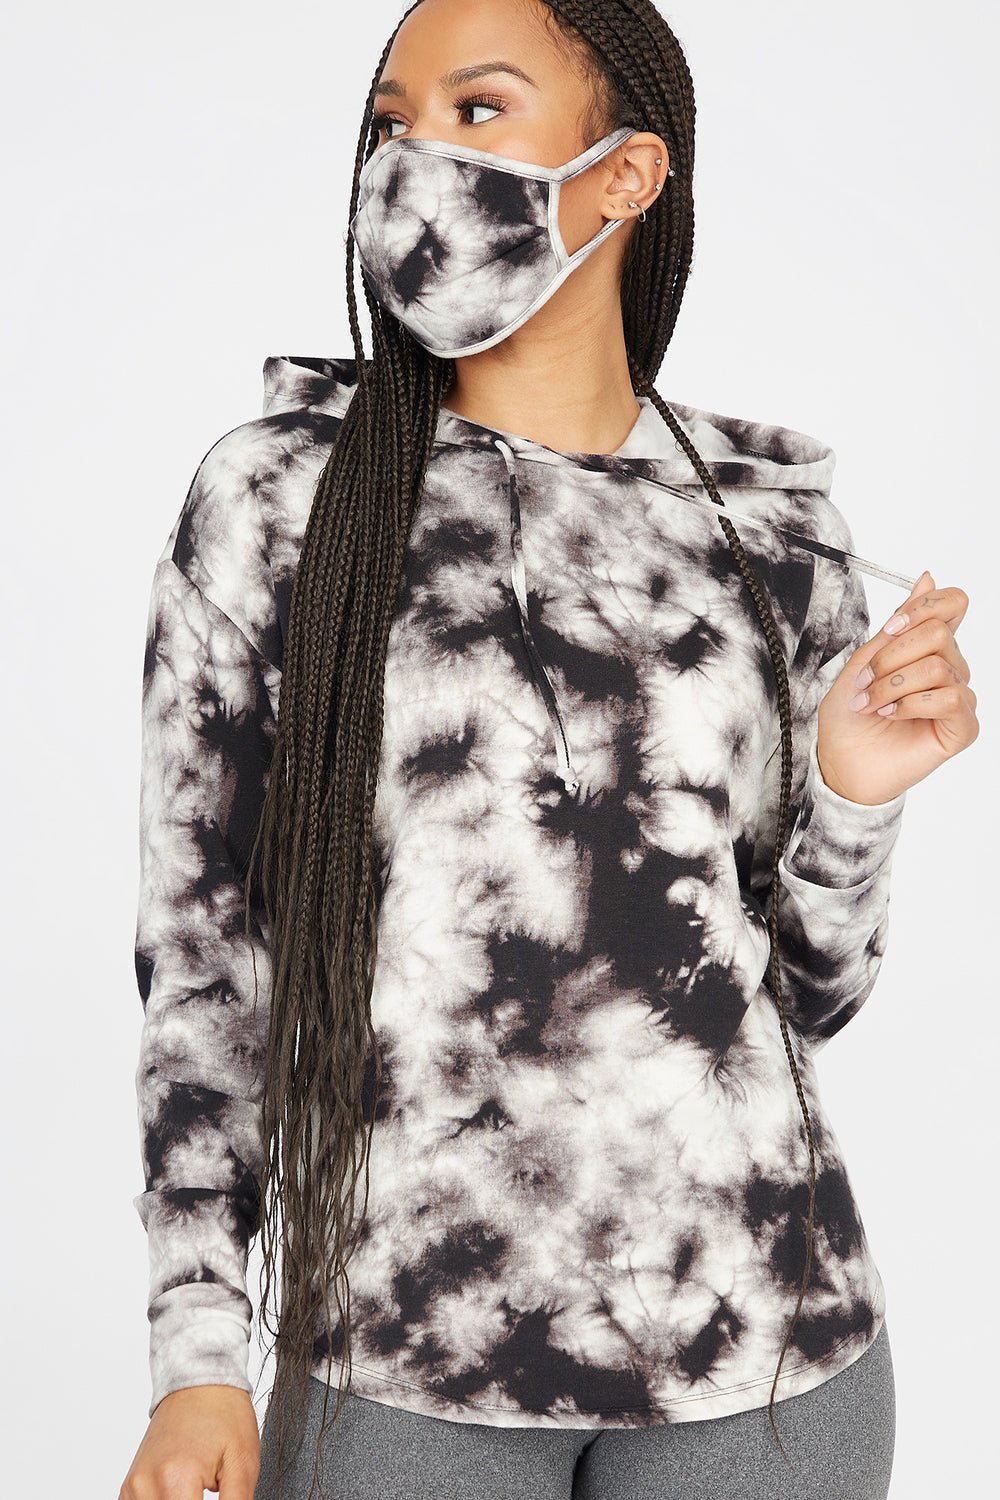 2-Piece Soft Fleece Black and White Tie Dye Hoodie With Washable & Reusable Protective Face Mask Set Black with White